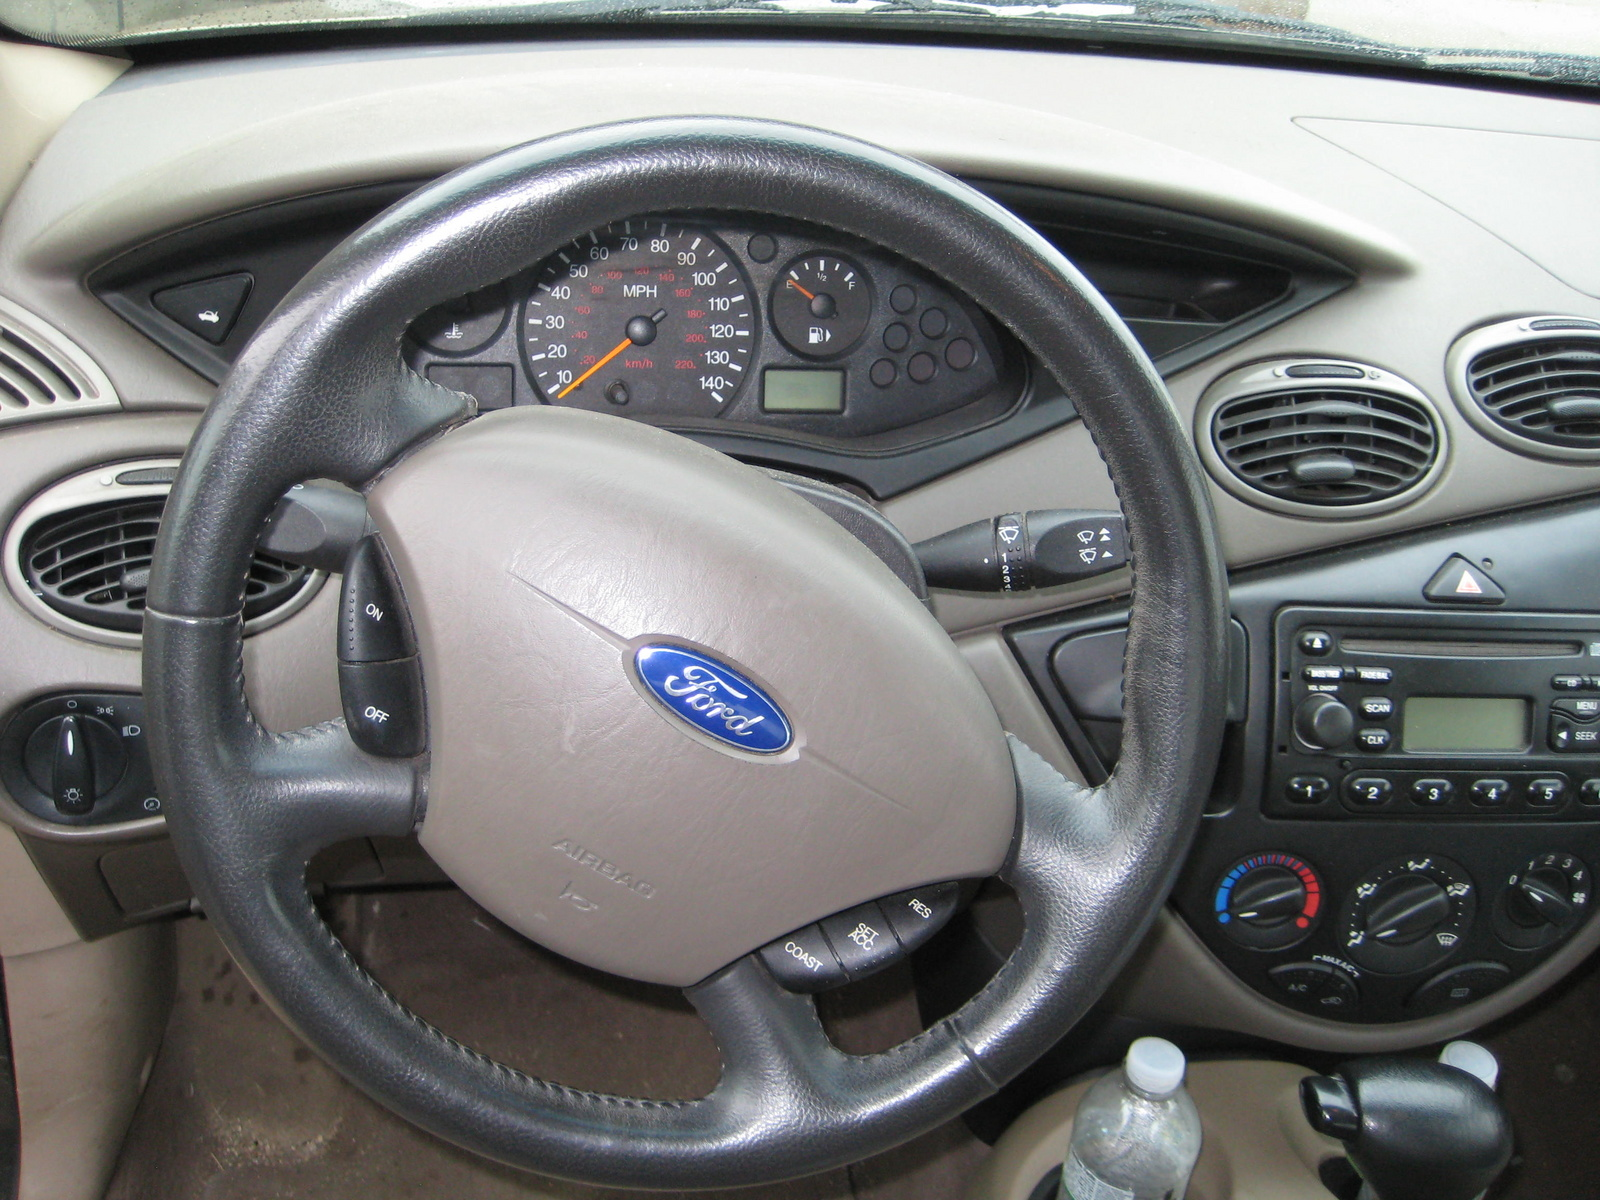 2003 Ford Focus Zx3 >> 2002 Ford Focus - Interior Pictures - CarGurus